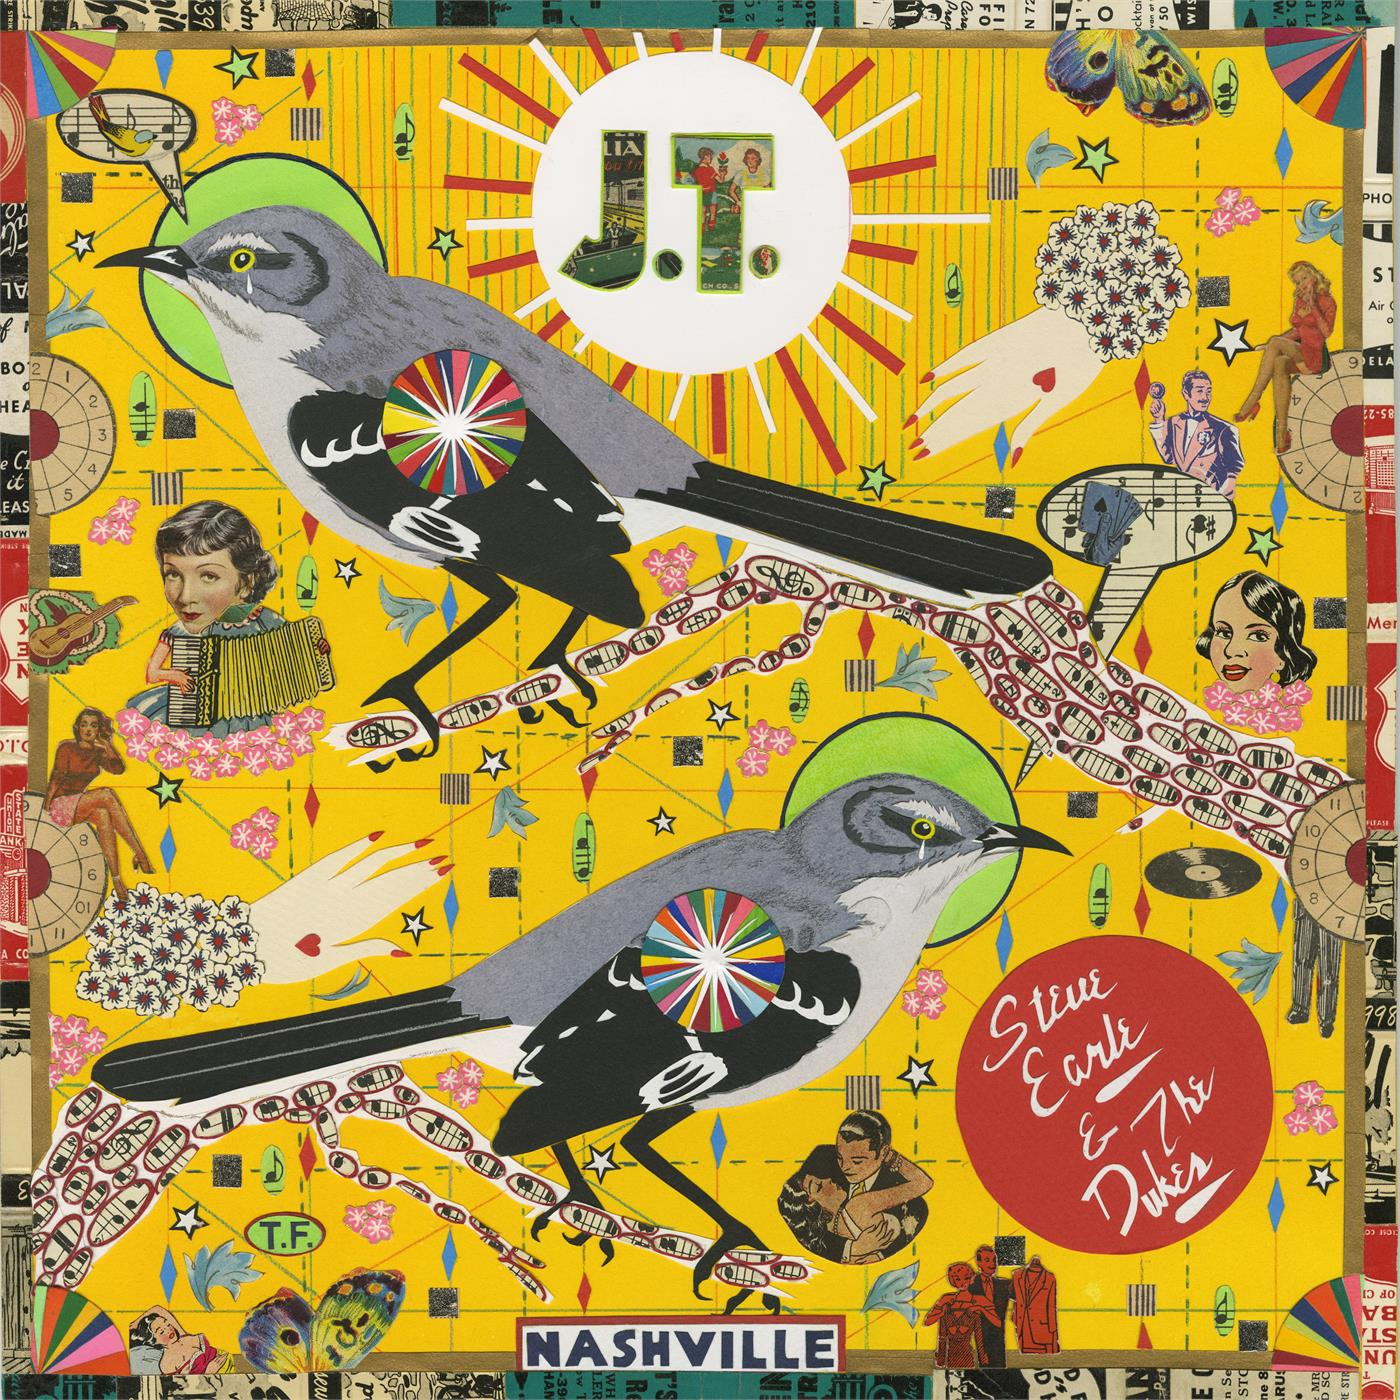 Steve Earle & The Dukes - J.T. [LTD LP] (Red Vinyl)